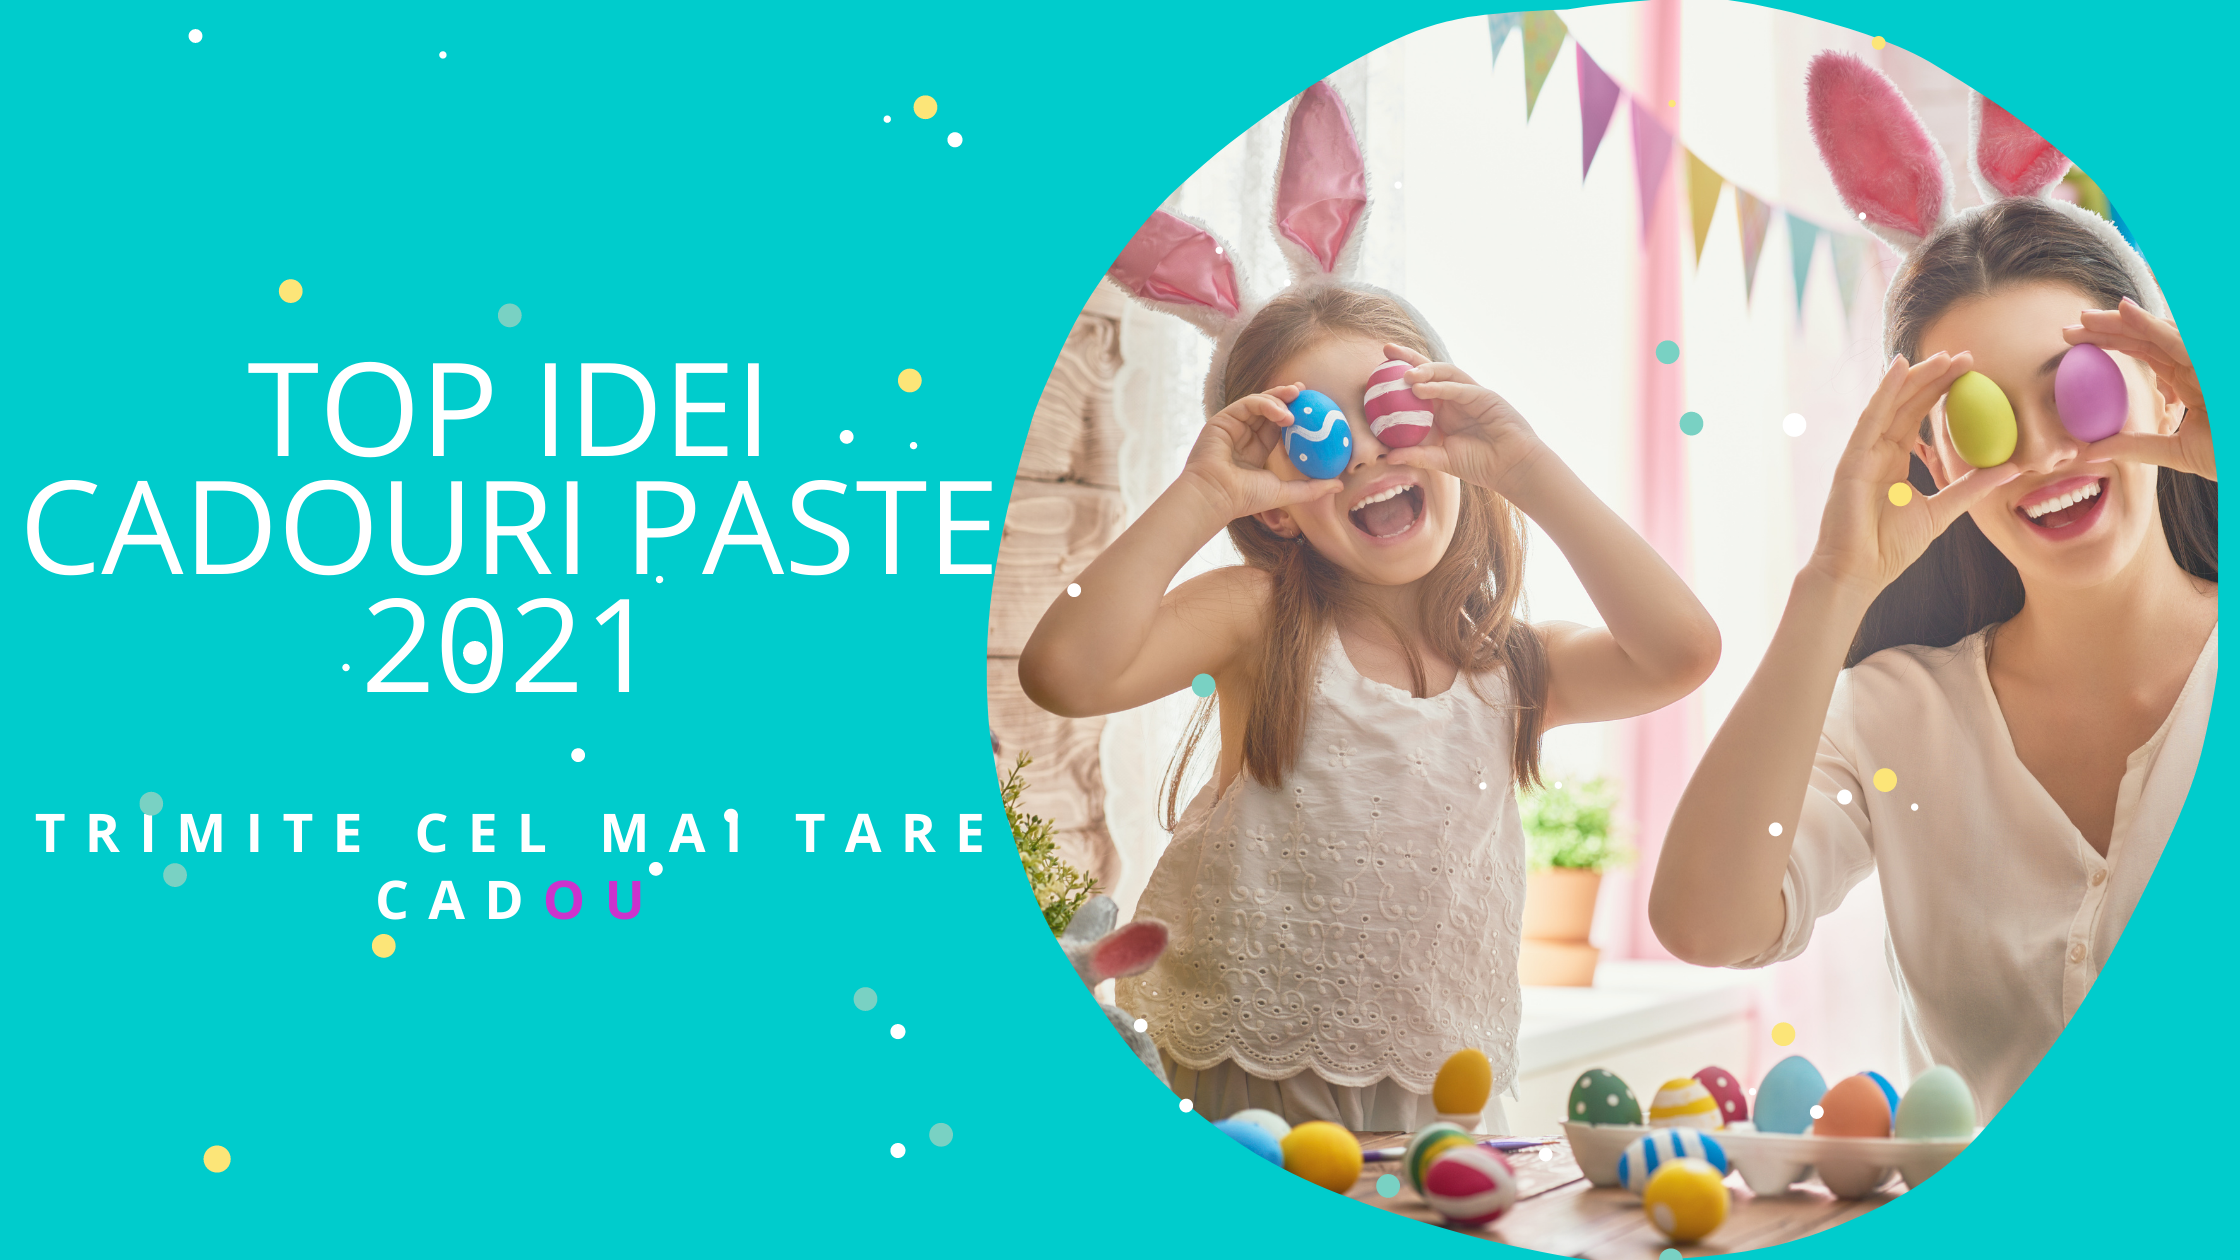 TOP Super Idei Cadouri Paste 2021